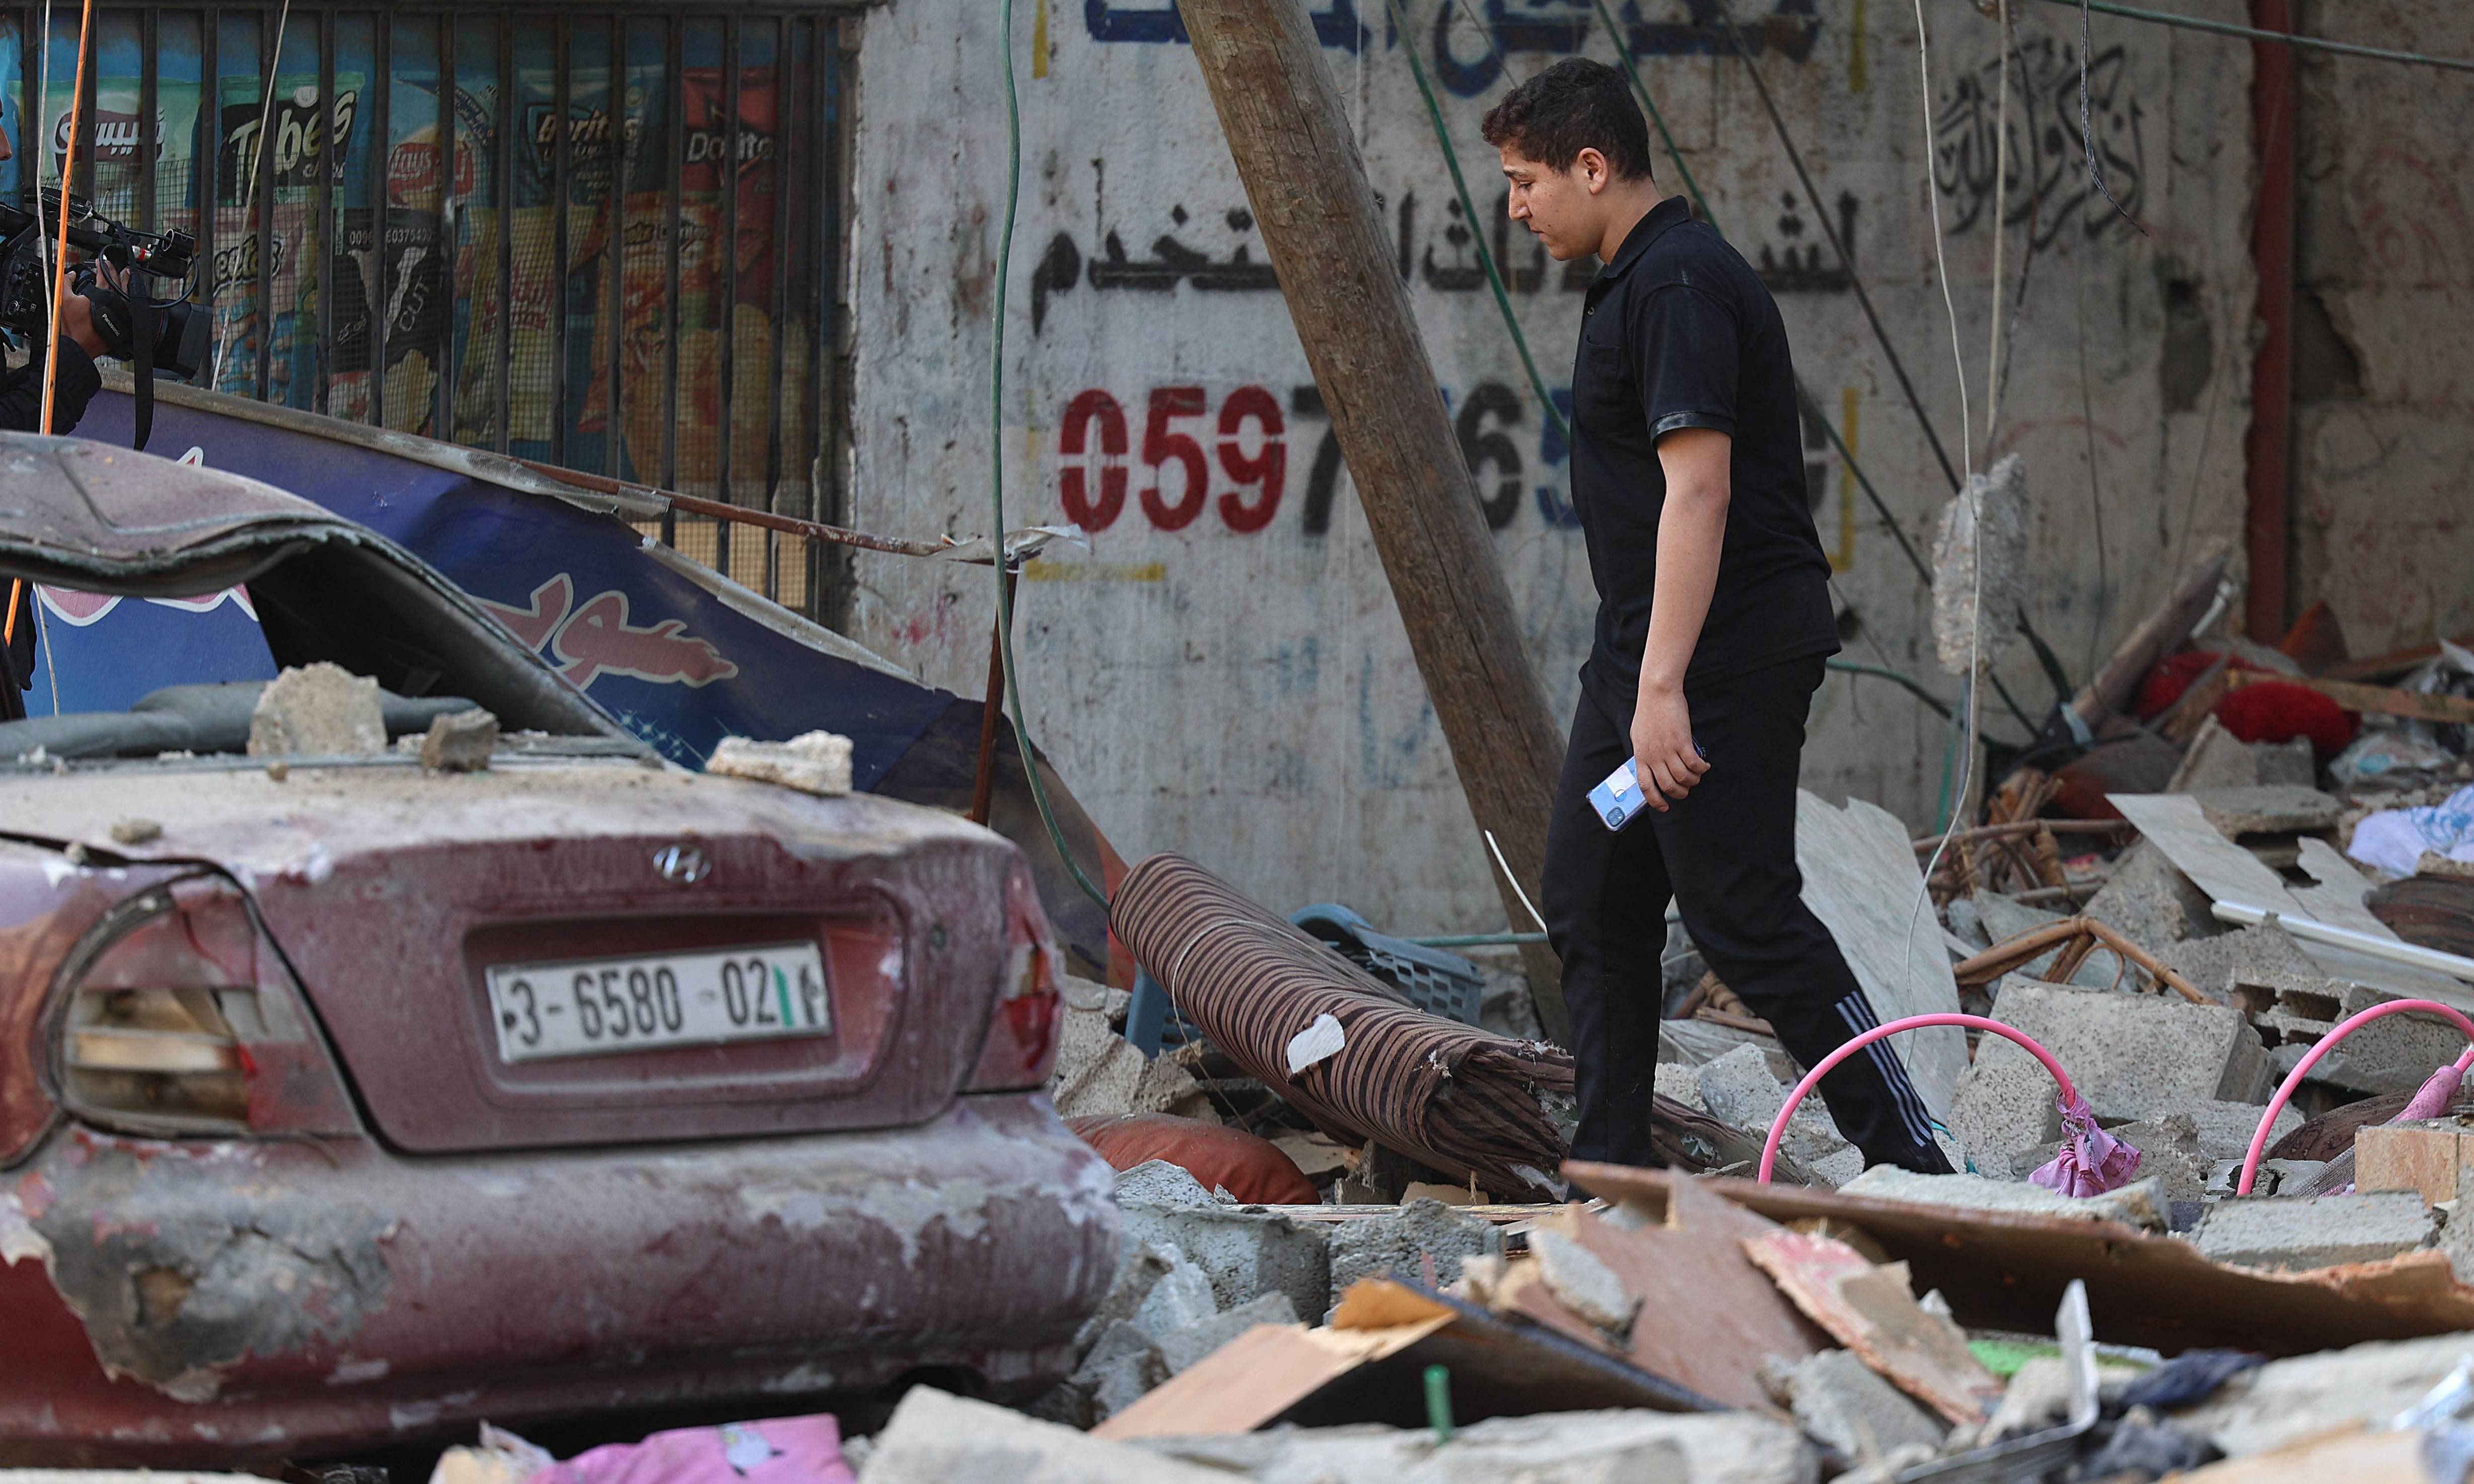 A Palestinian man walks amidst debris in the aftermath of an Israeli air strike in Gaza City, on May 19.  — AFP